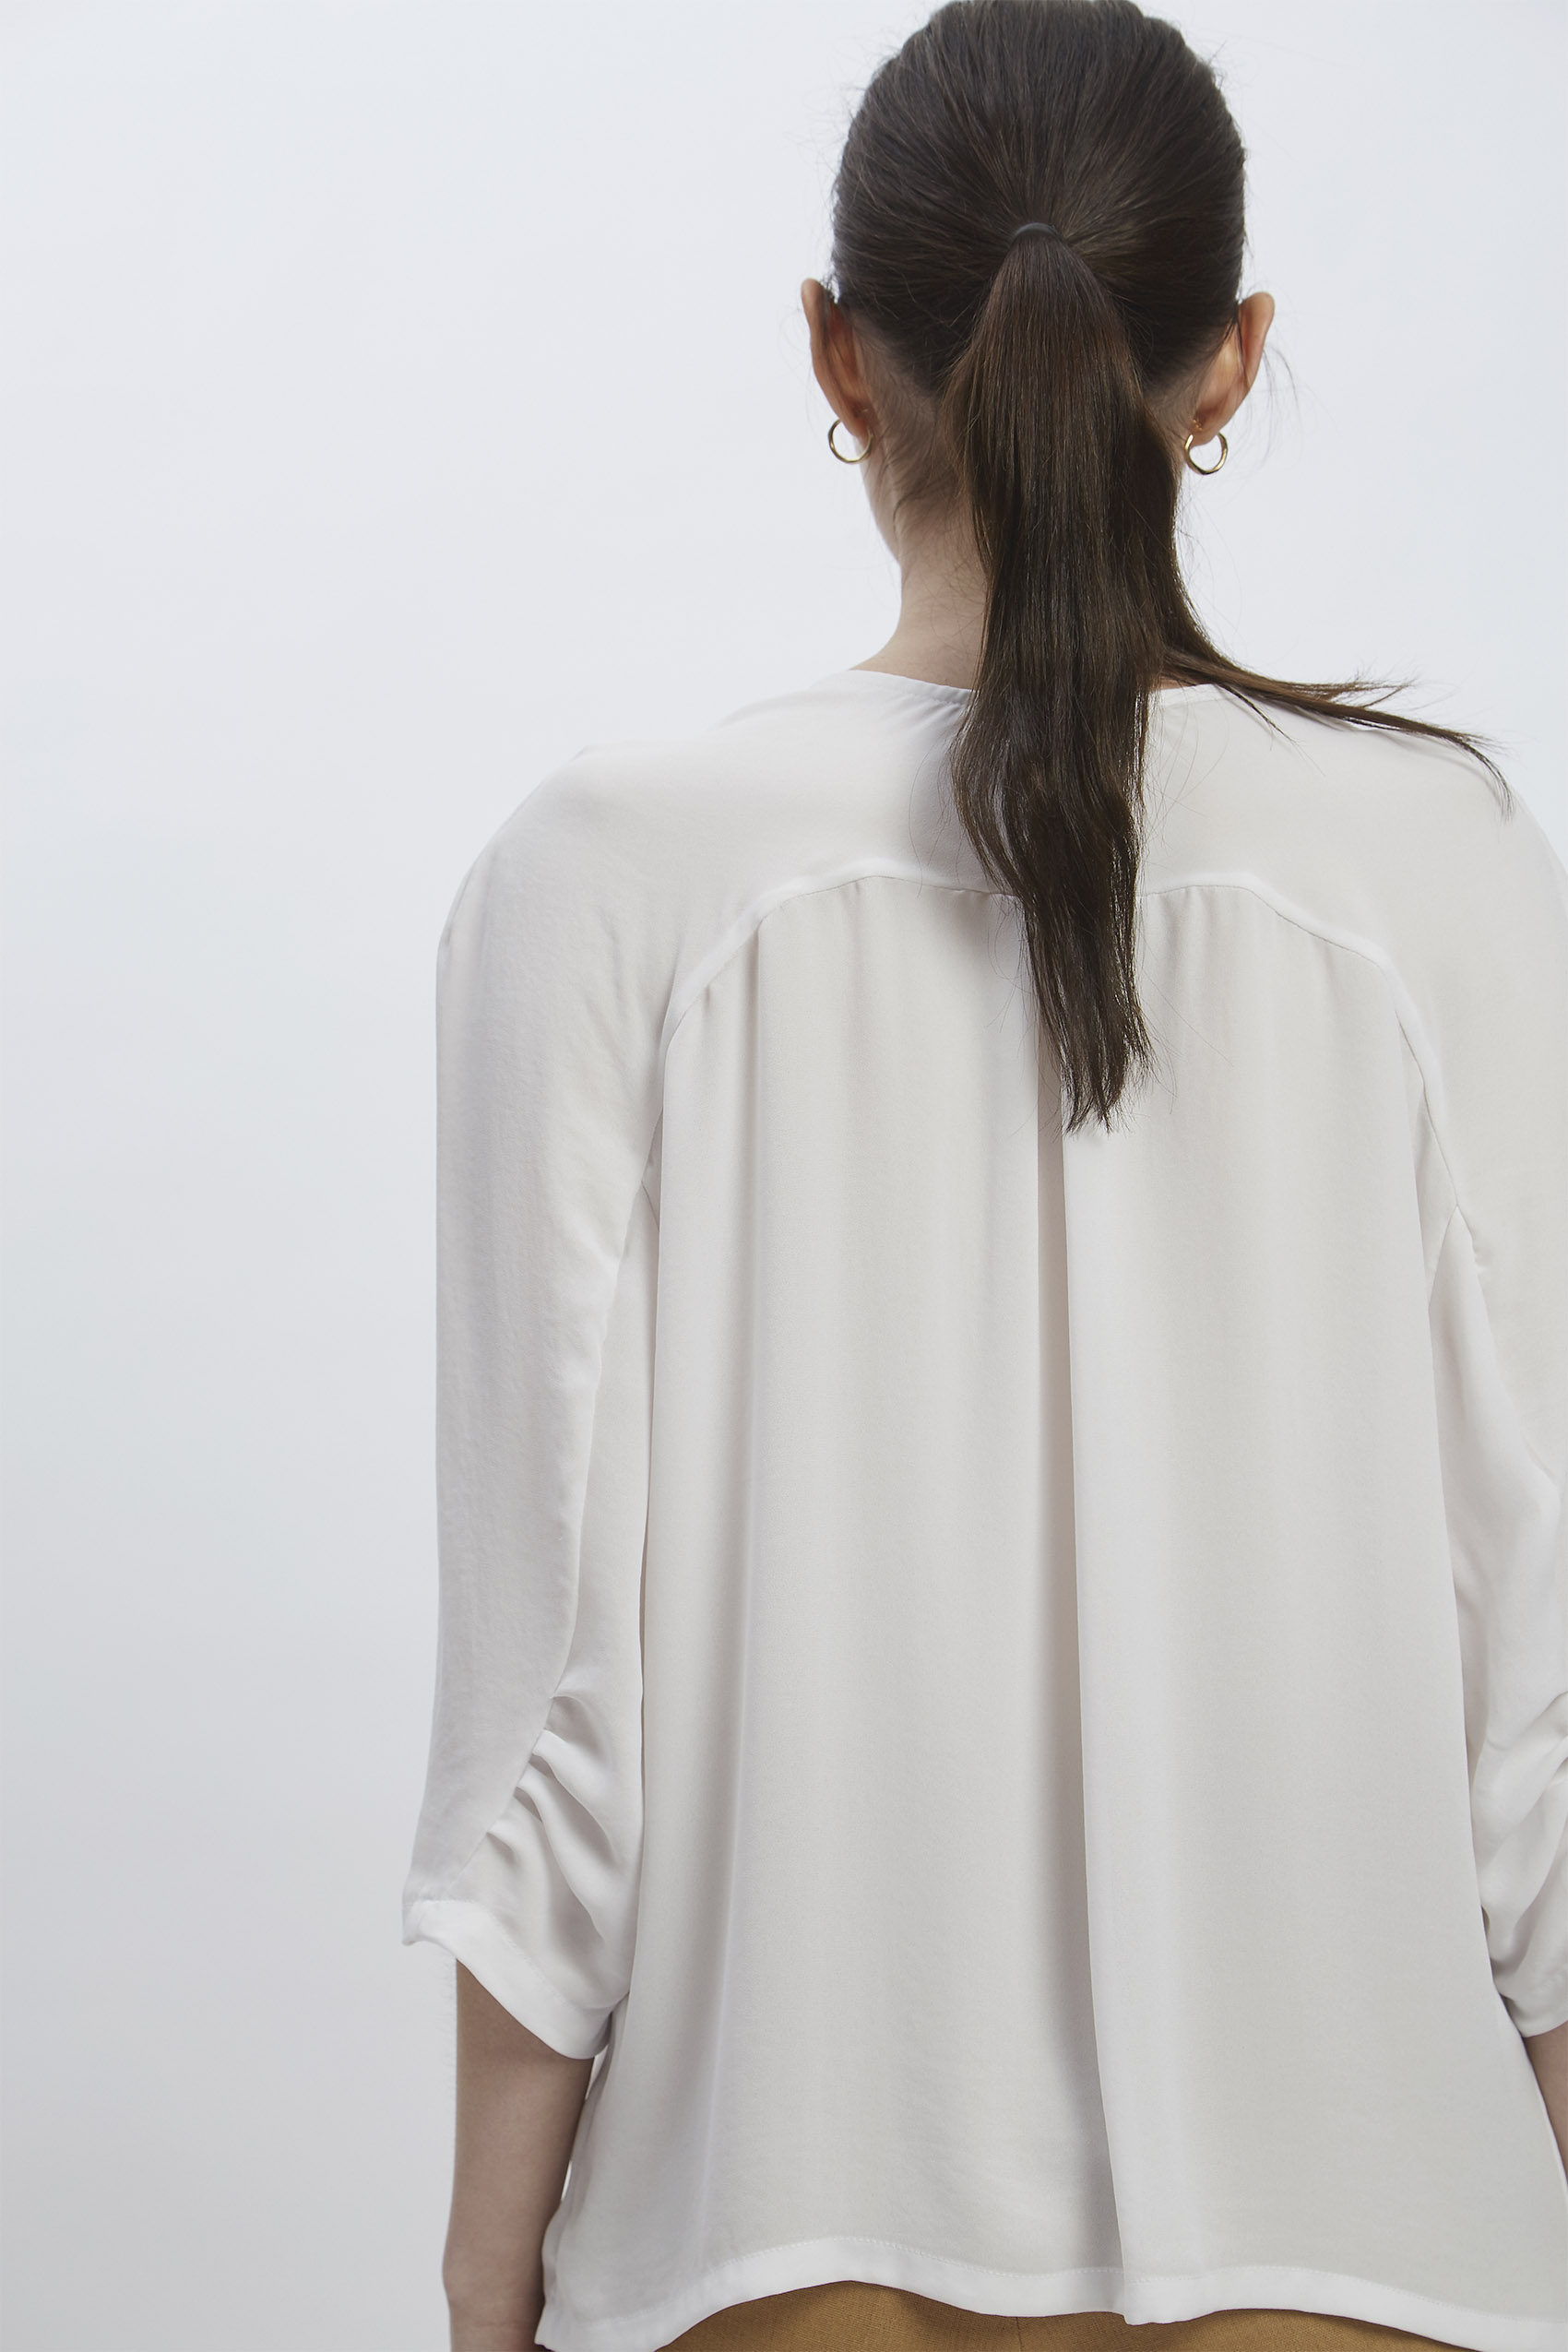 awada_blusa-polly_00-31-2020__picture-15285